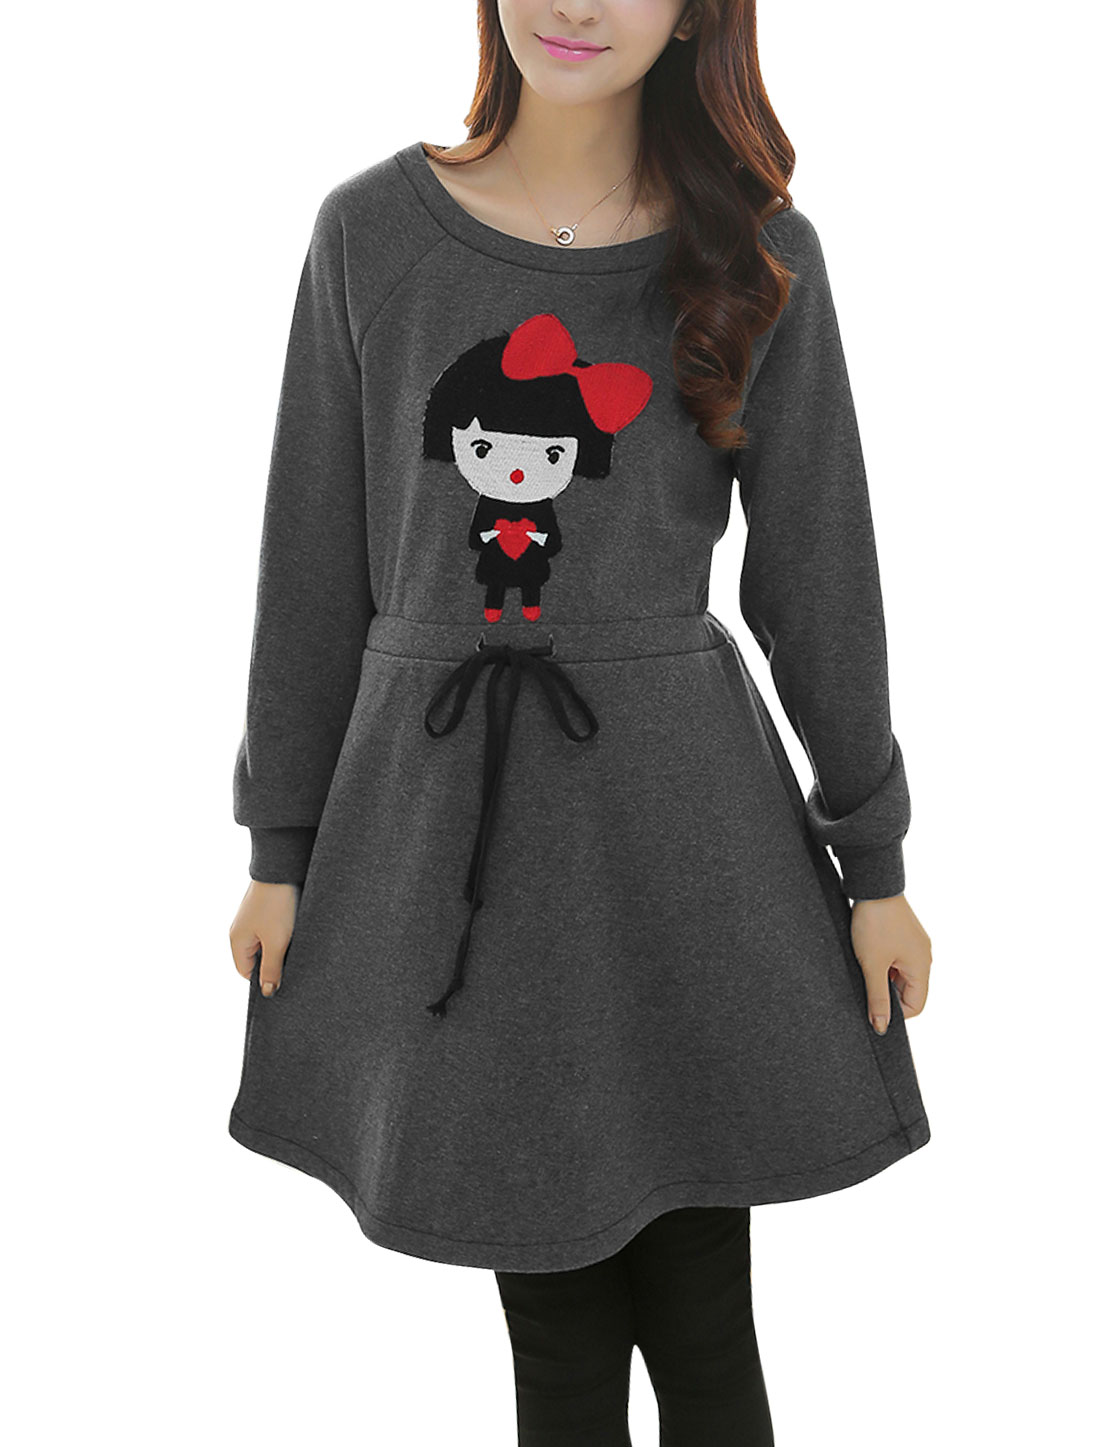 Maternity Soft Raglan Sleeve Applique Pattern Casual Dress Dark Gray L